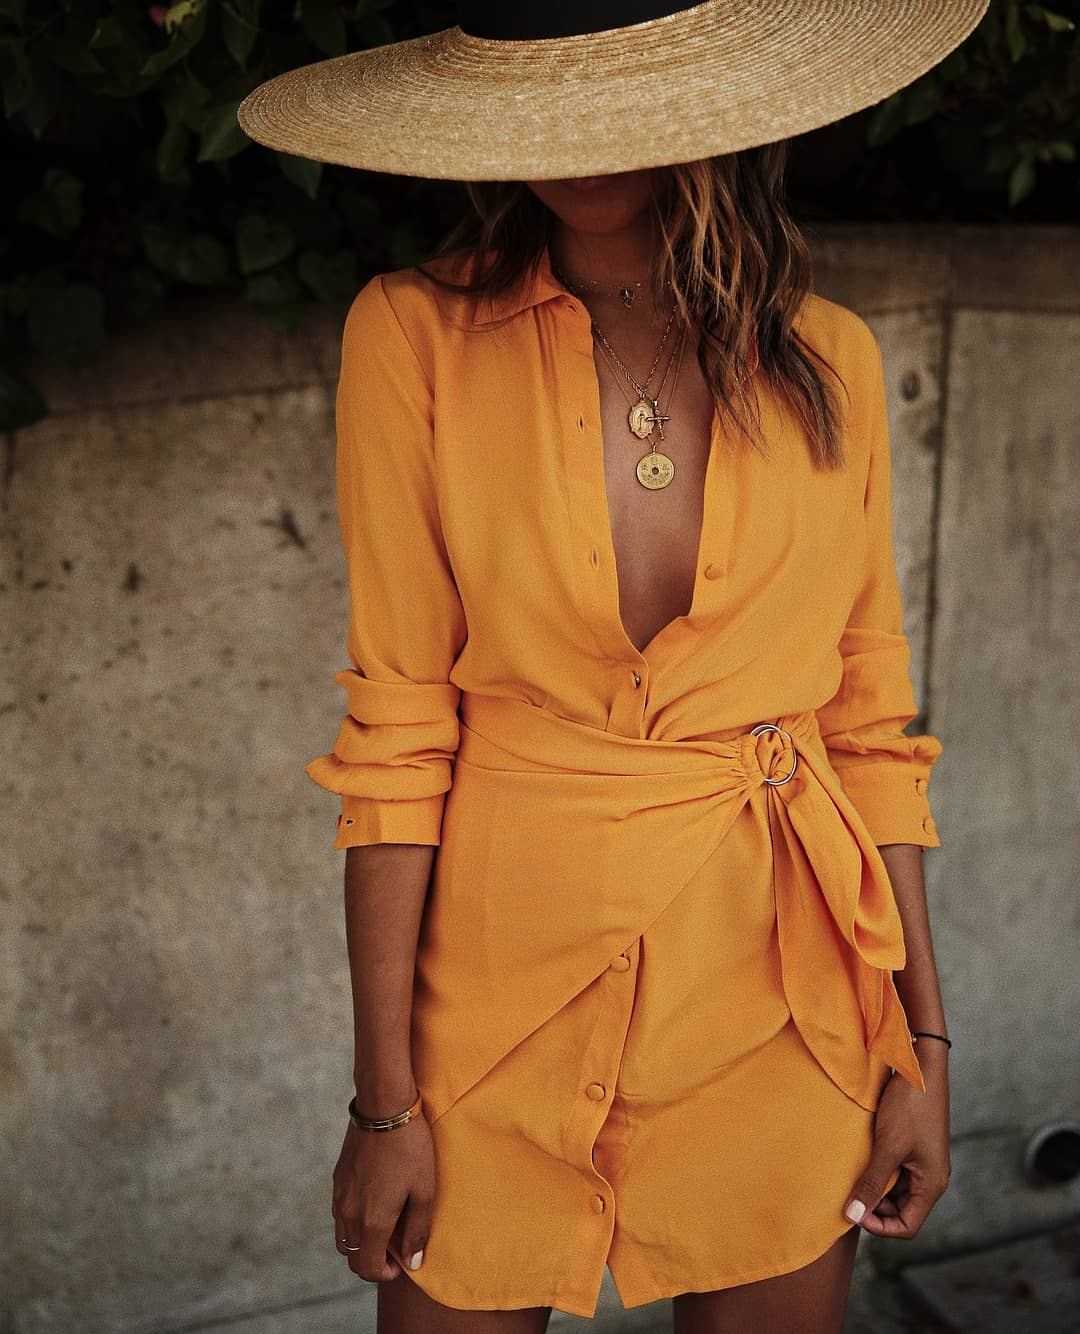 Orange Shirtdress With Wrap Detail For Summer Vacation 2020